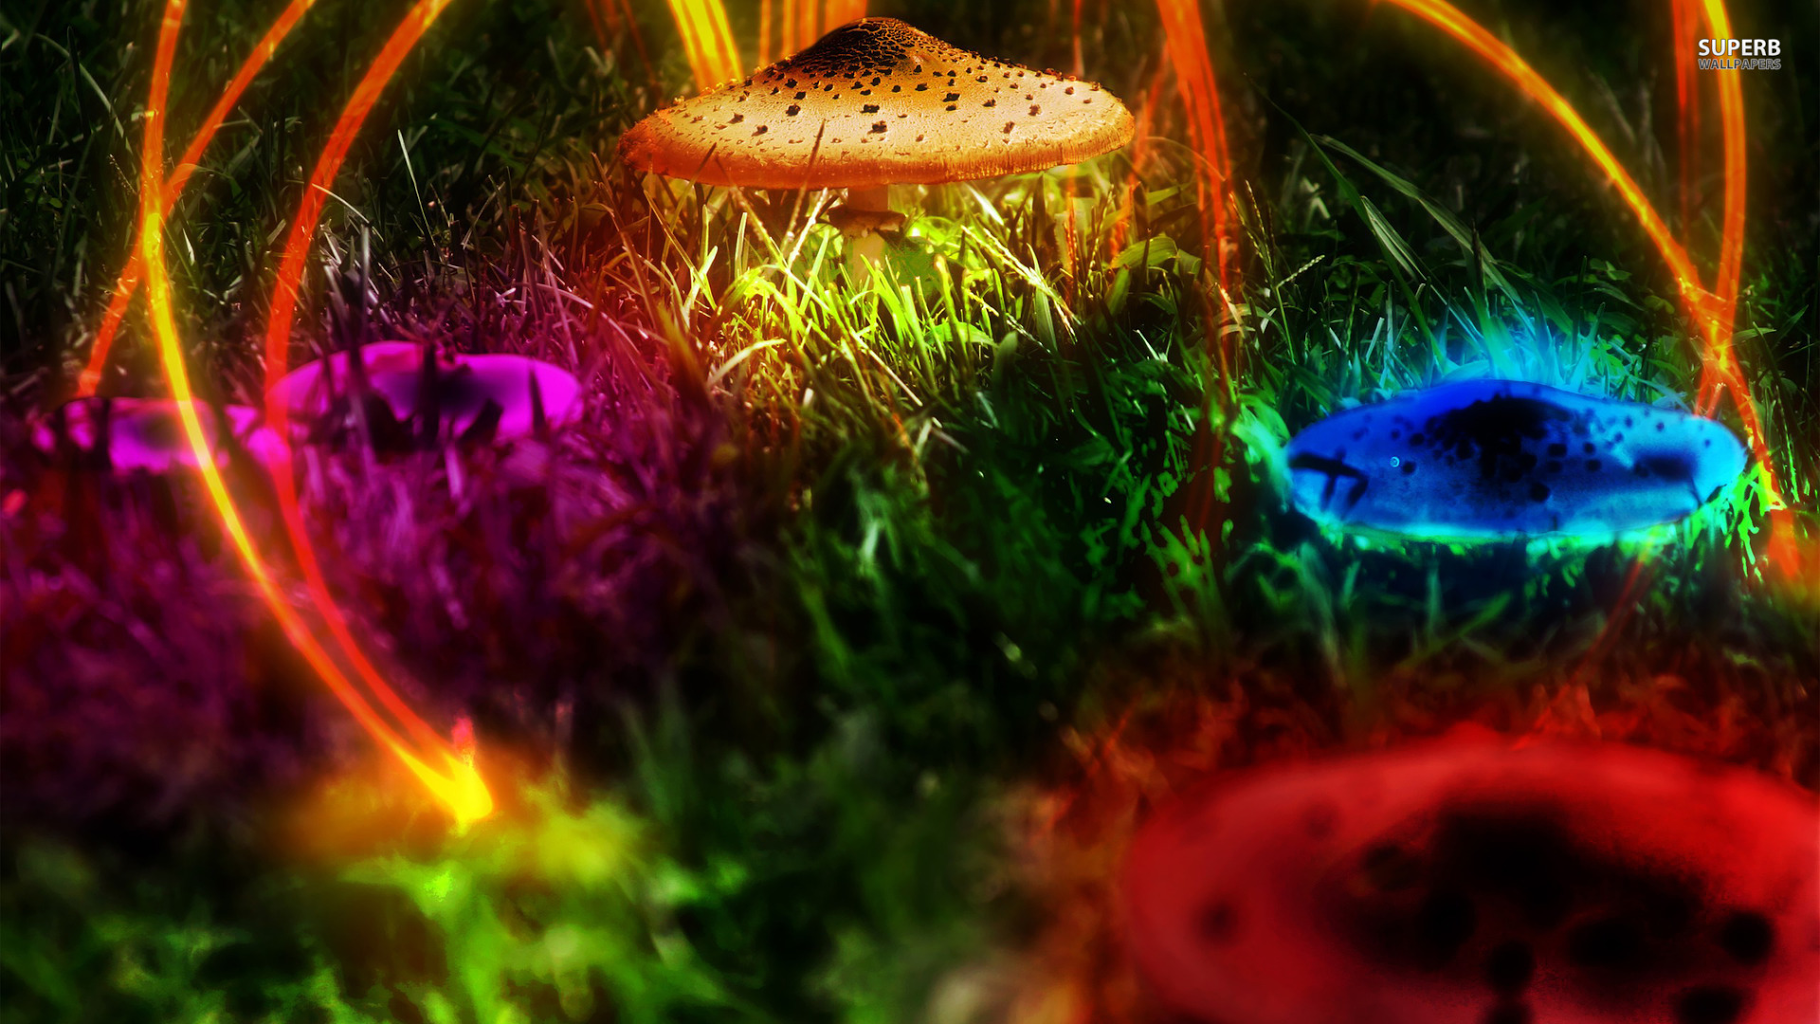 3d Neon Mushroom Wallpaper Uhd 3d Wallpaper Hd Images And Pictures Picamon